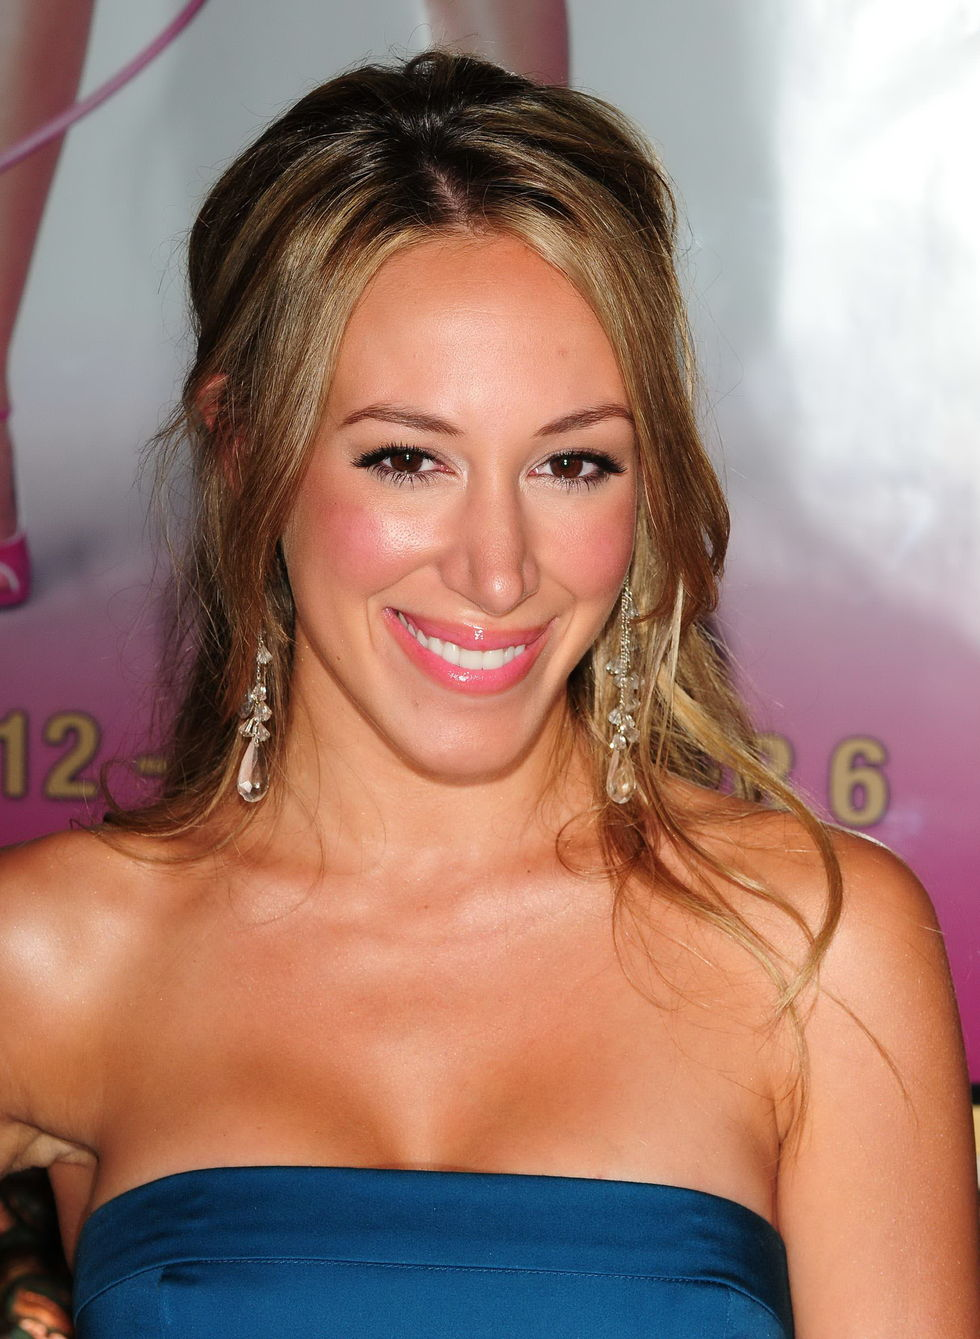 haylie-duff-legally-blonde-the-musical-premiere-in-hollywood-01